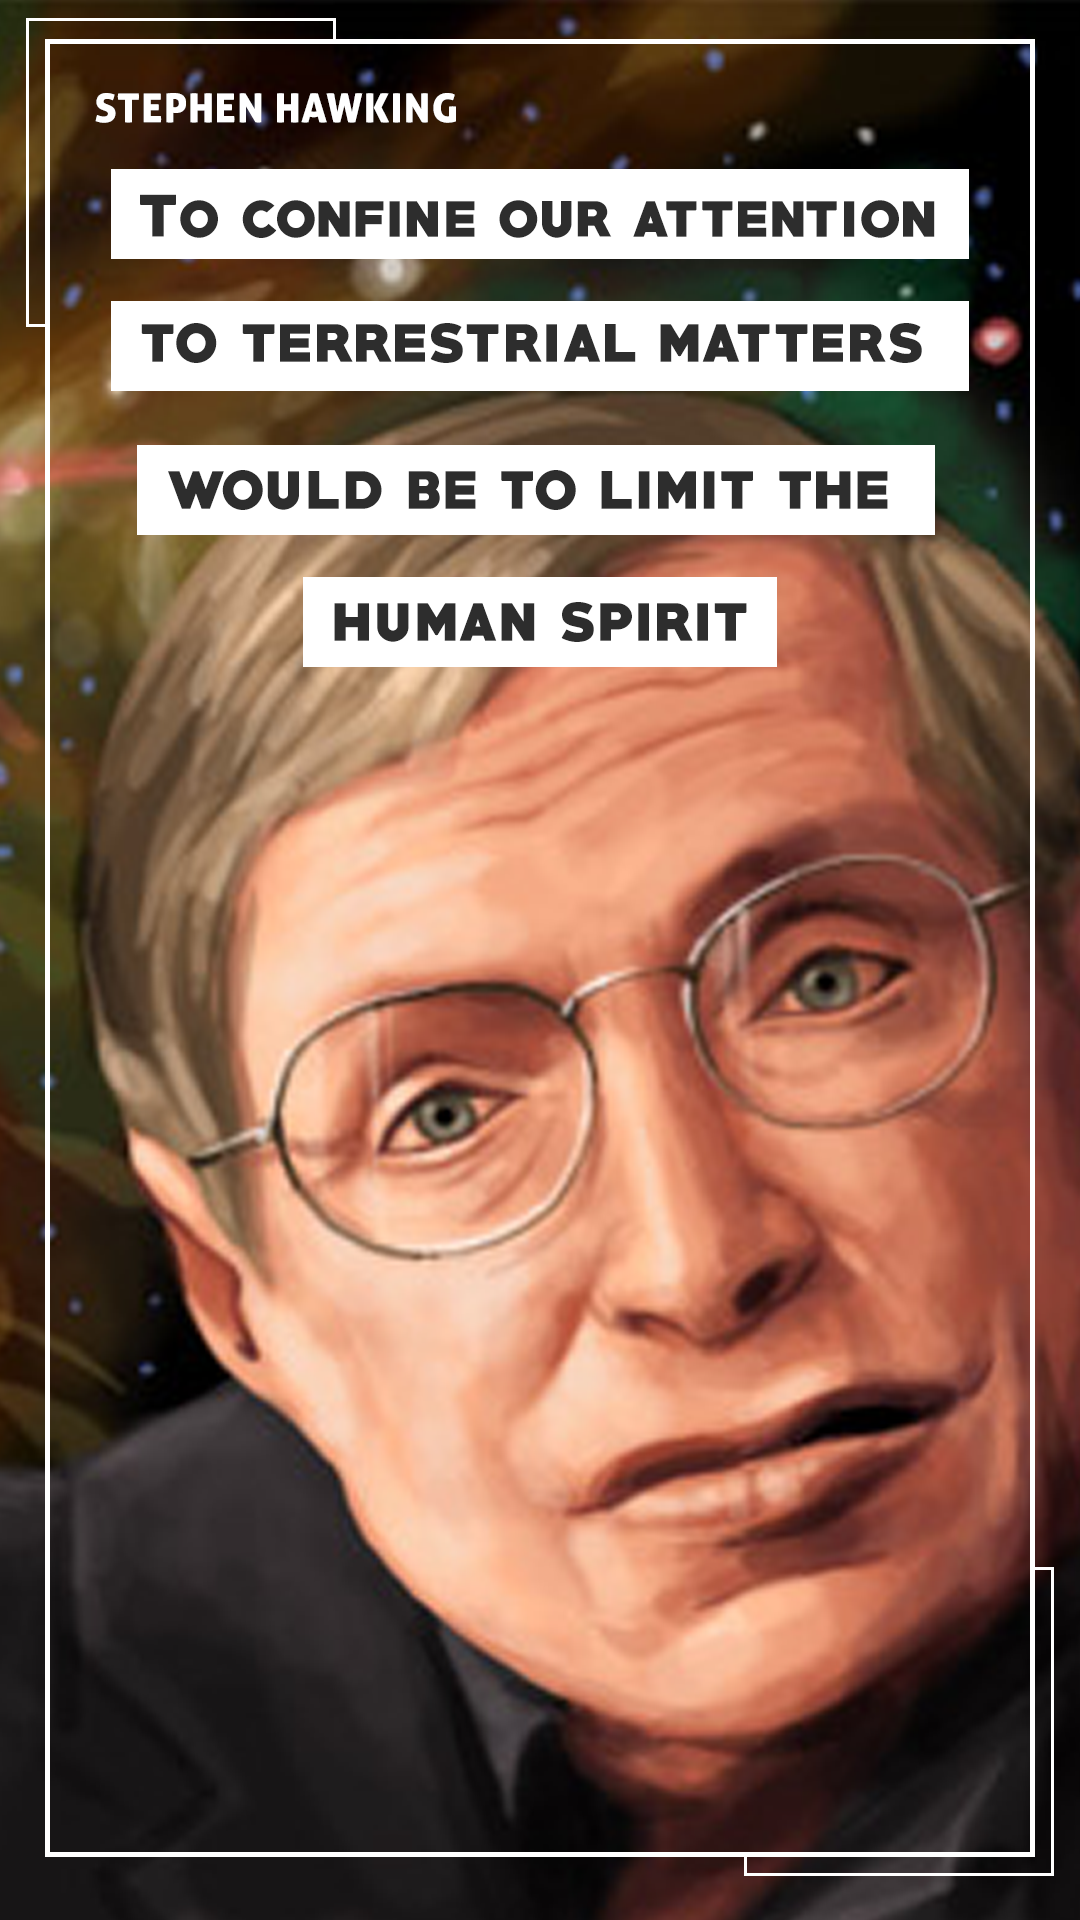 Stephen Hawking Quote Mobile Wallpaper3